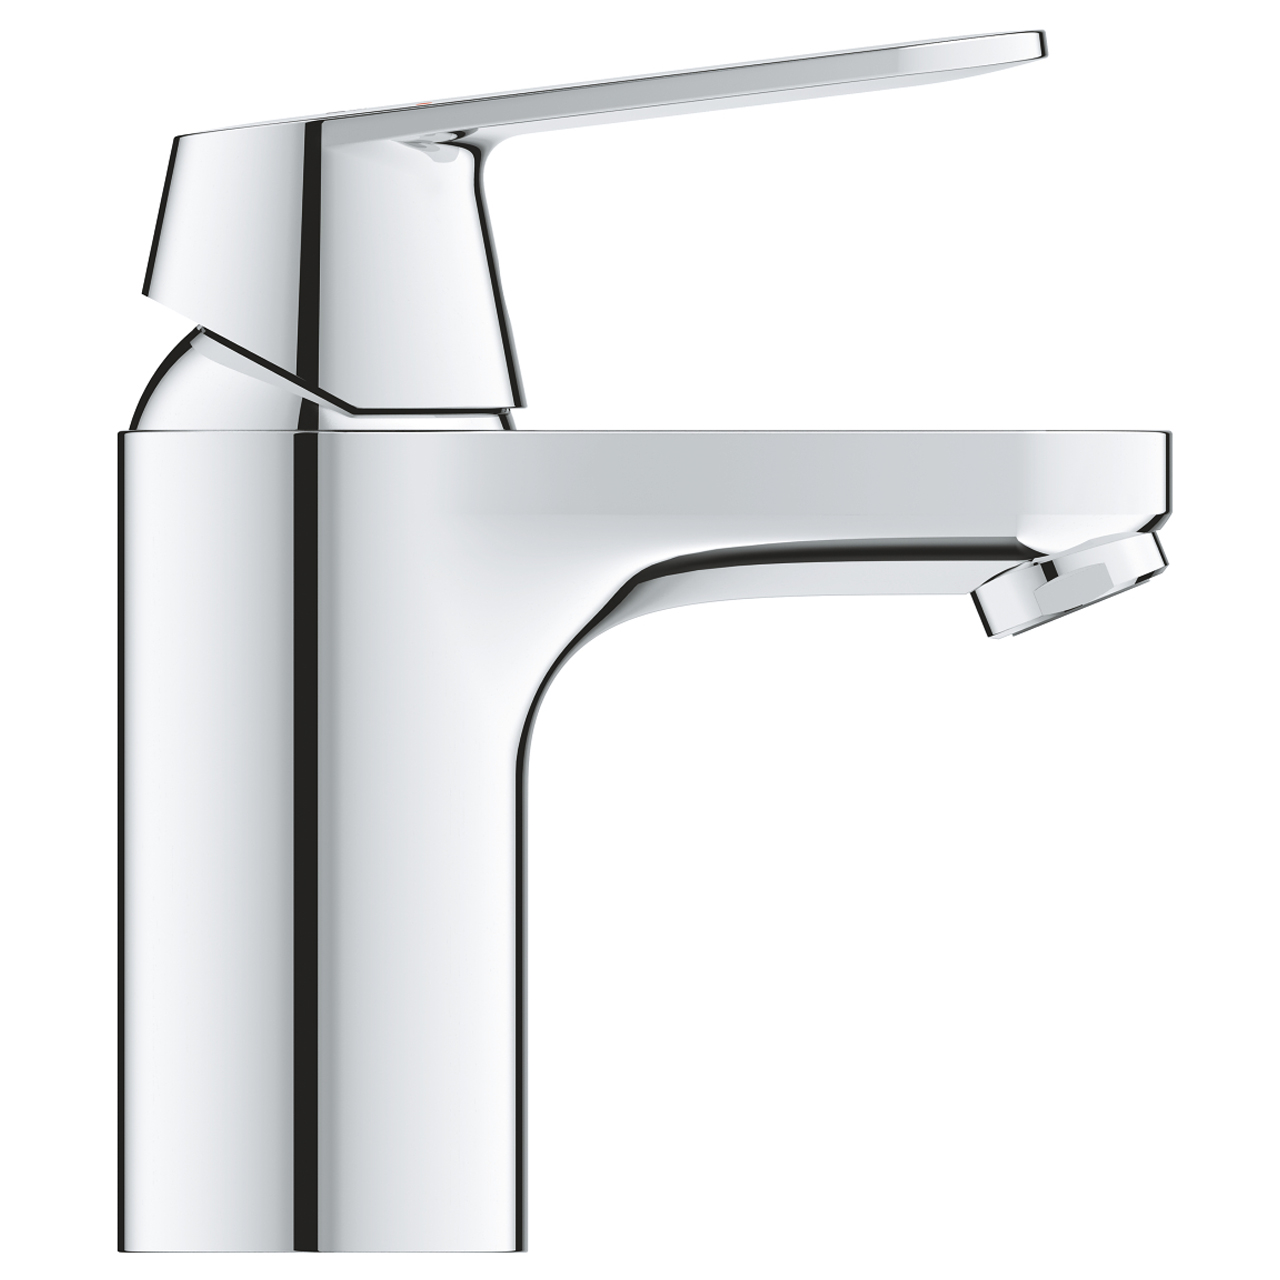 Grohe Eurosmart Cosmo Basin Mixer Smooth Body-0